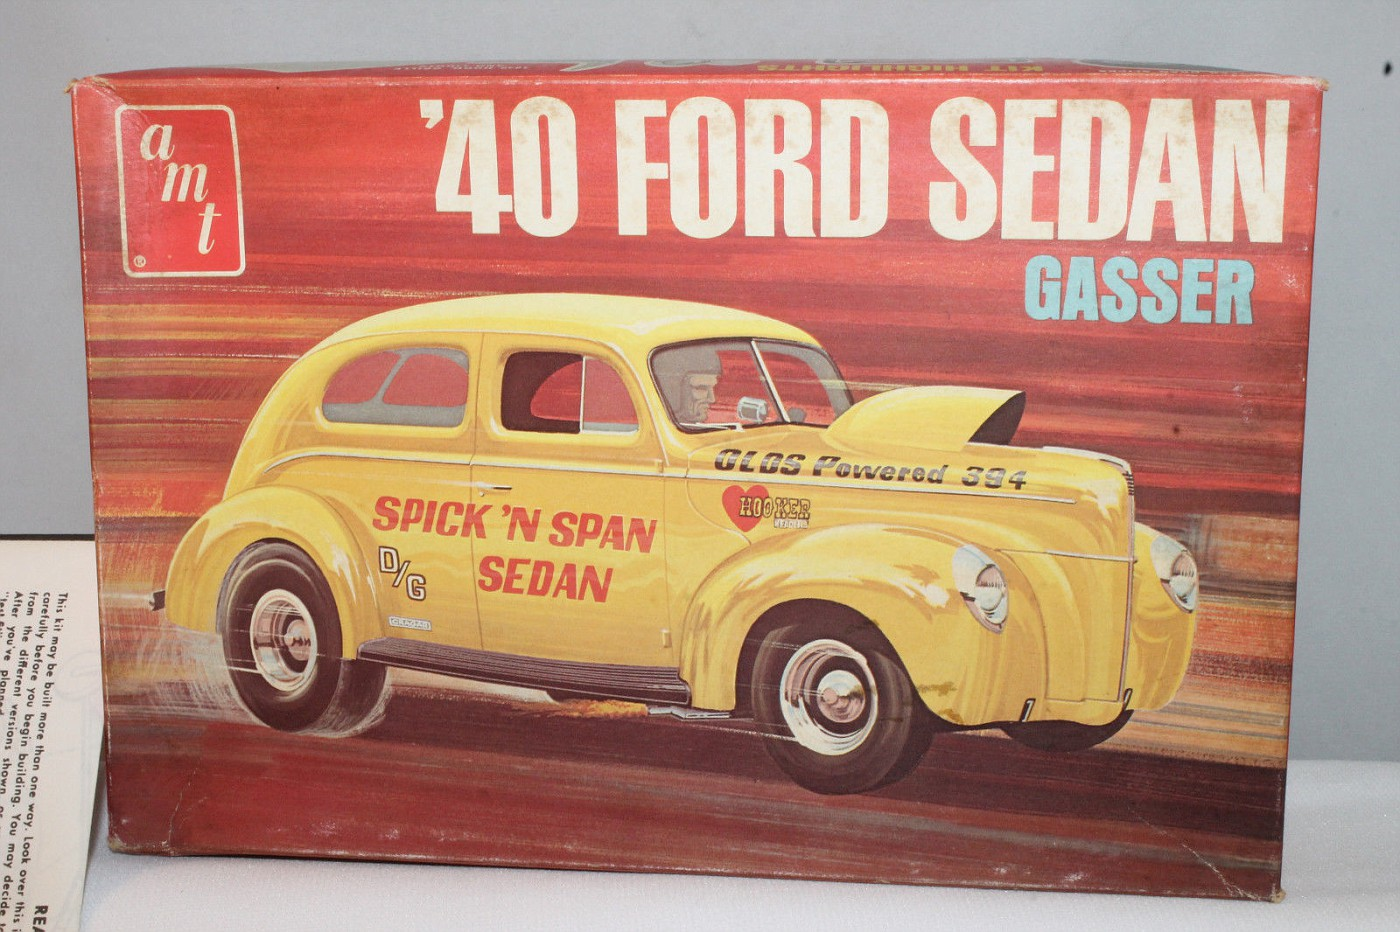 Photo: AMT 1940 Ford Sedan Gasser | AMT 1940 Ford Coupe